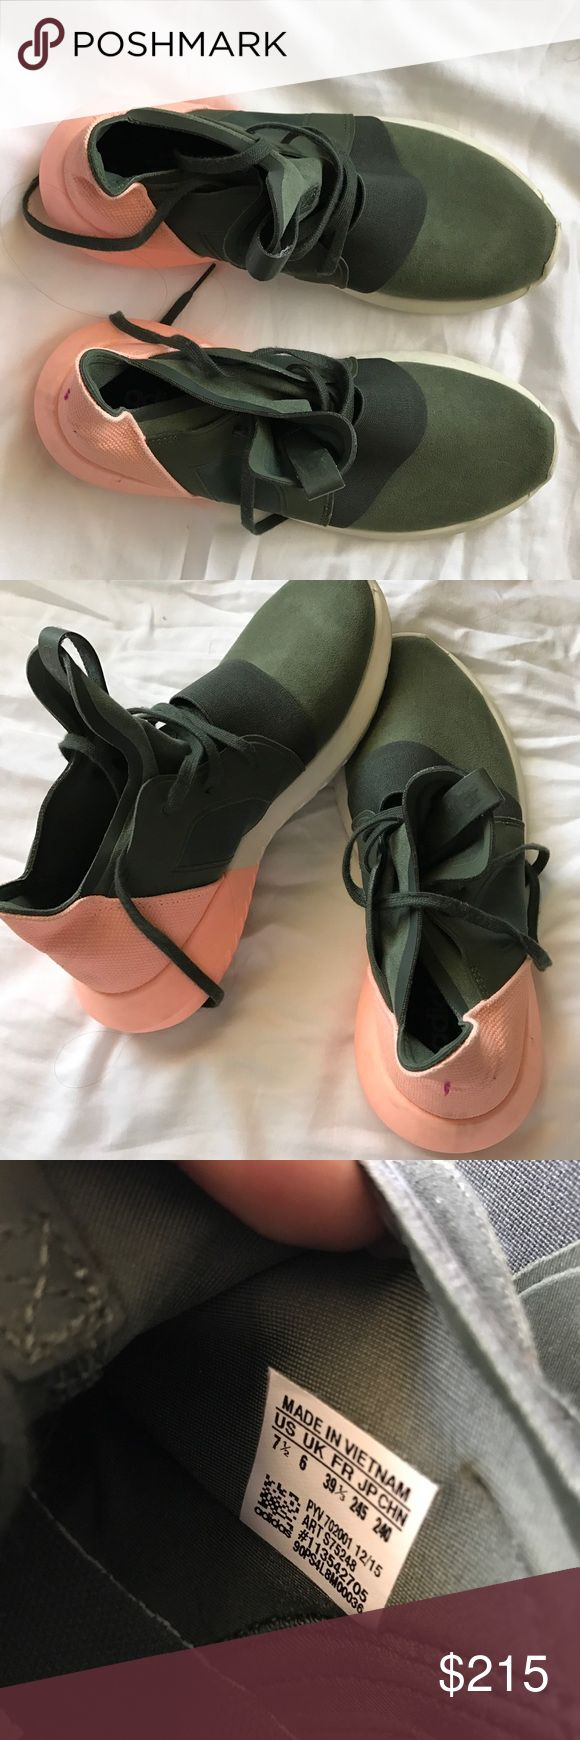 Adidas Tubular shoes Super stylish shoes. Sold out everywhere. Wore them about three times. Good condition. 7.5 in woman. adidas Shoes Sneakers